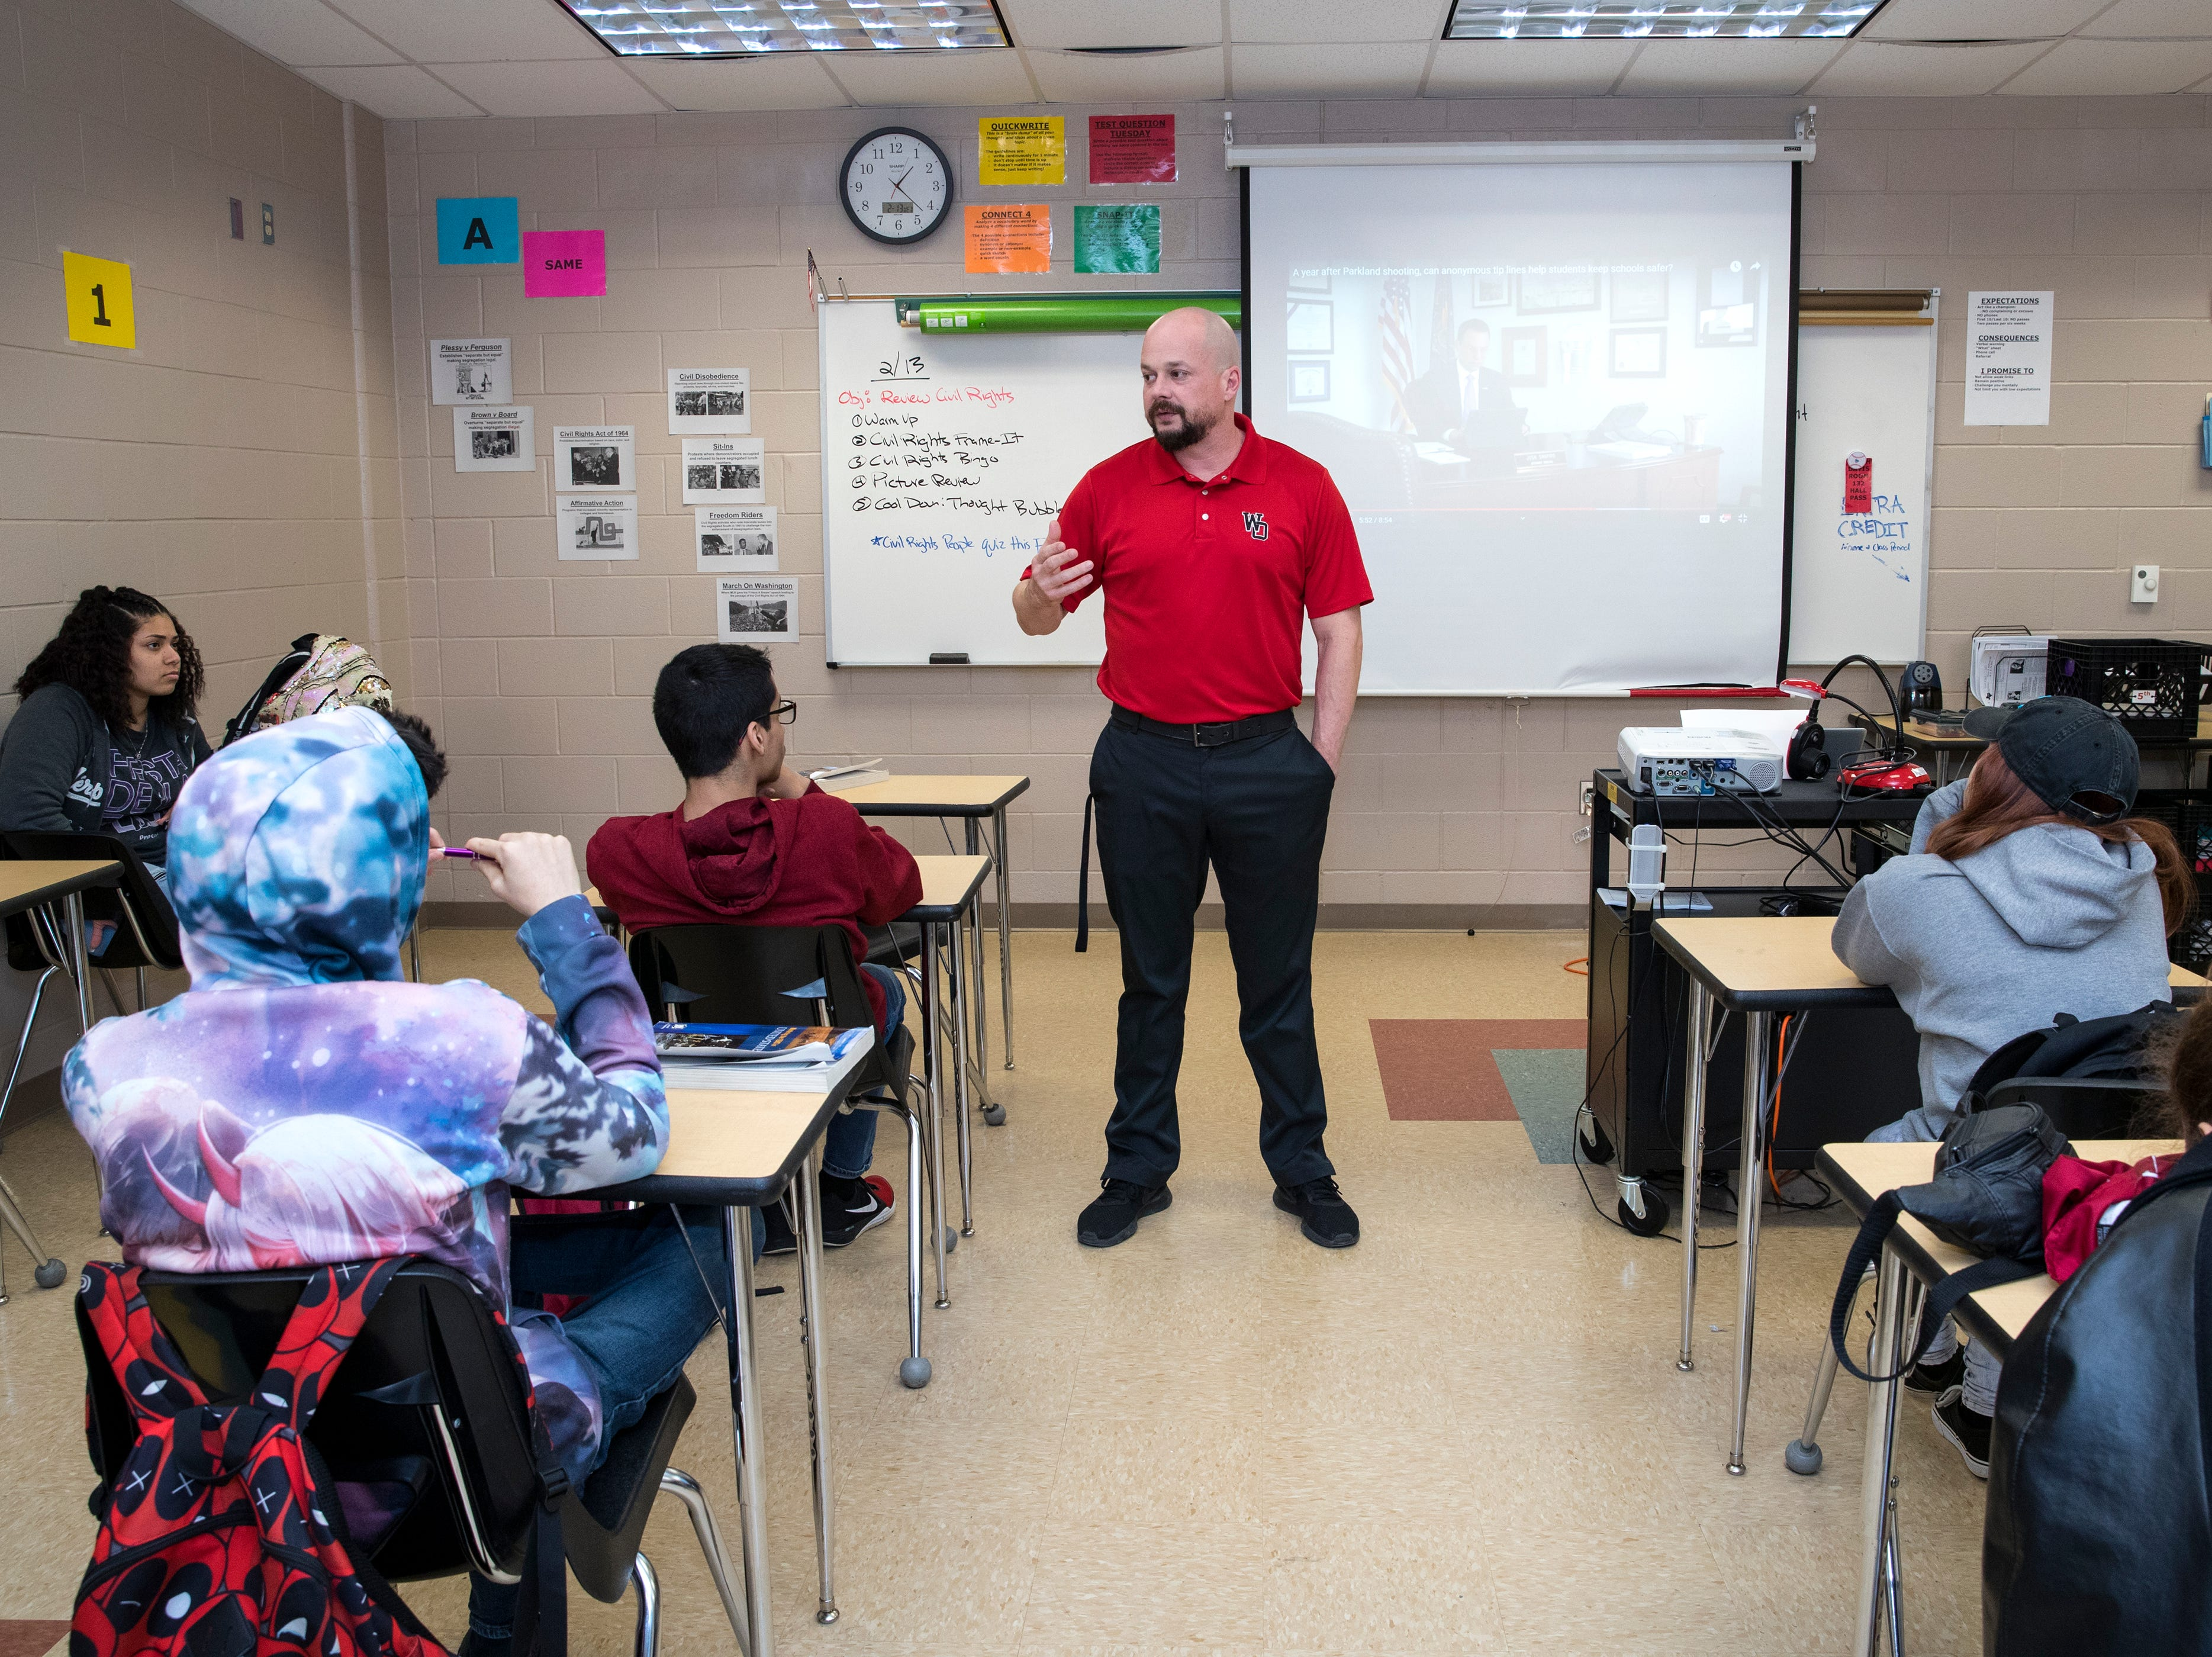 """History teacher Chandler Davis talks with his homeroom class about a video they watched about an app created to help prevent school shootings following the Parkland school shooting during """"bear time"""" at West Oso High School on Wednesday, February 13, 2019. The homeroom period is used as a safe space during which teachers are expected to develop a home away from home culture where they can pick up on any warning signs that students may be having suicidal thoughts so they can be referred to counselors."""